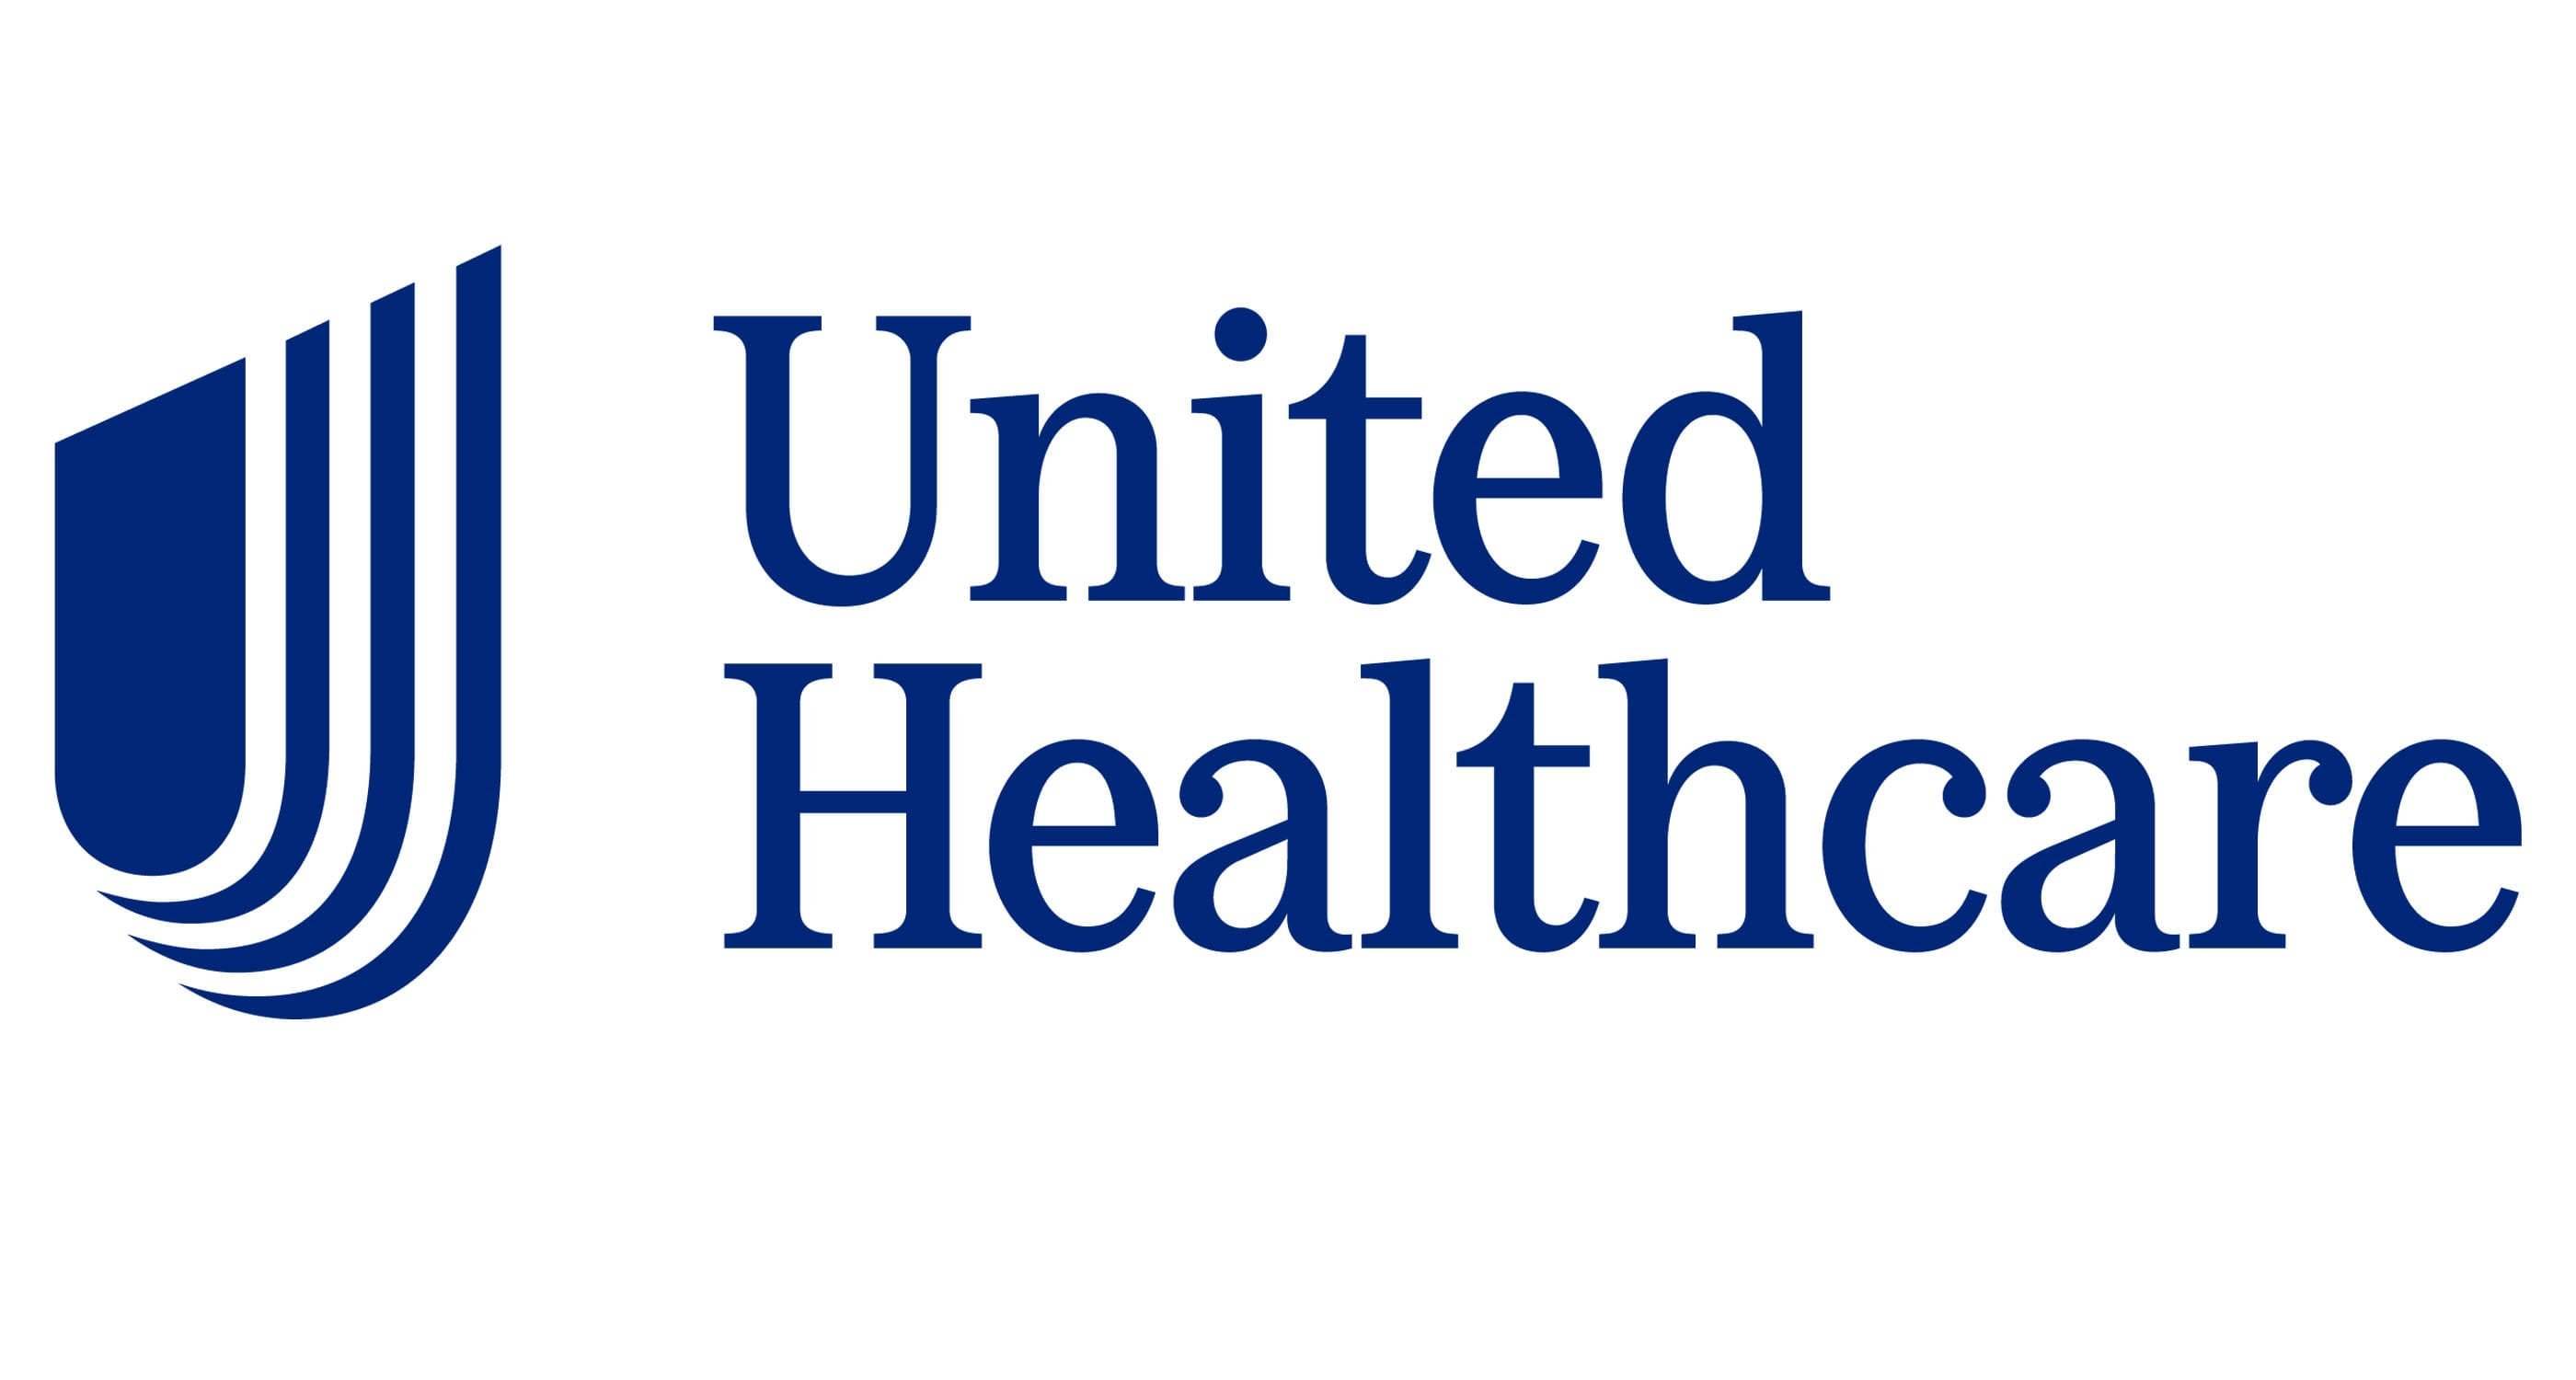 United Healthcare logo and symbol, meaning, history, PNG